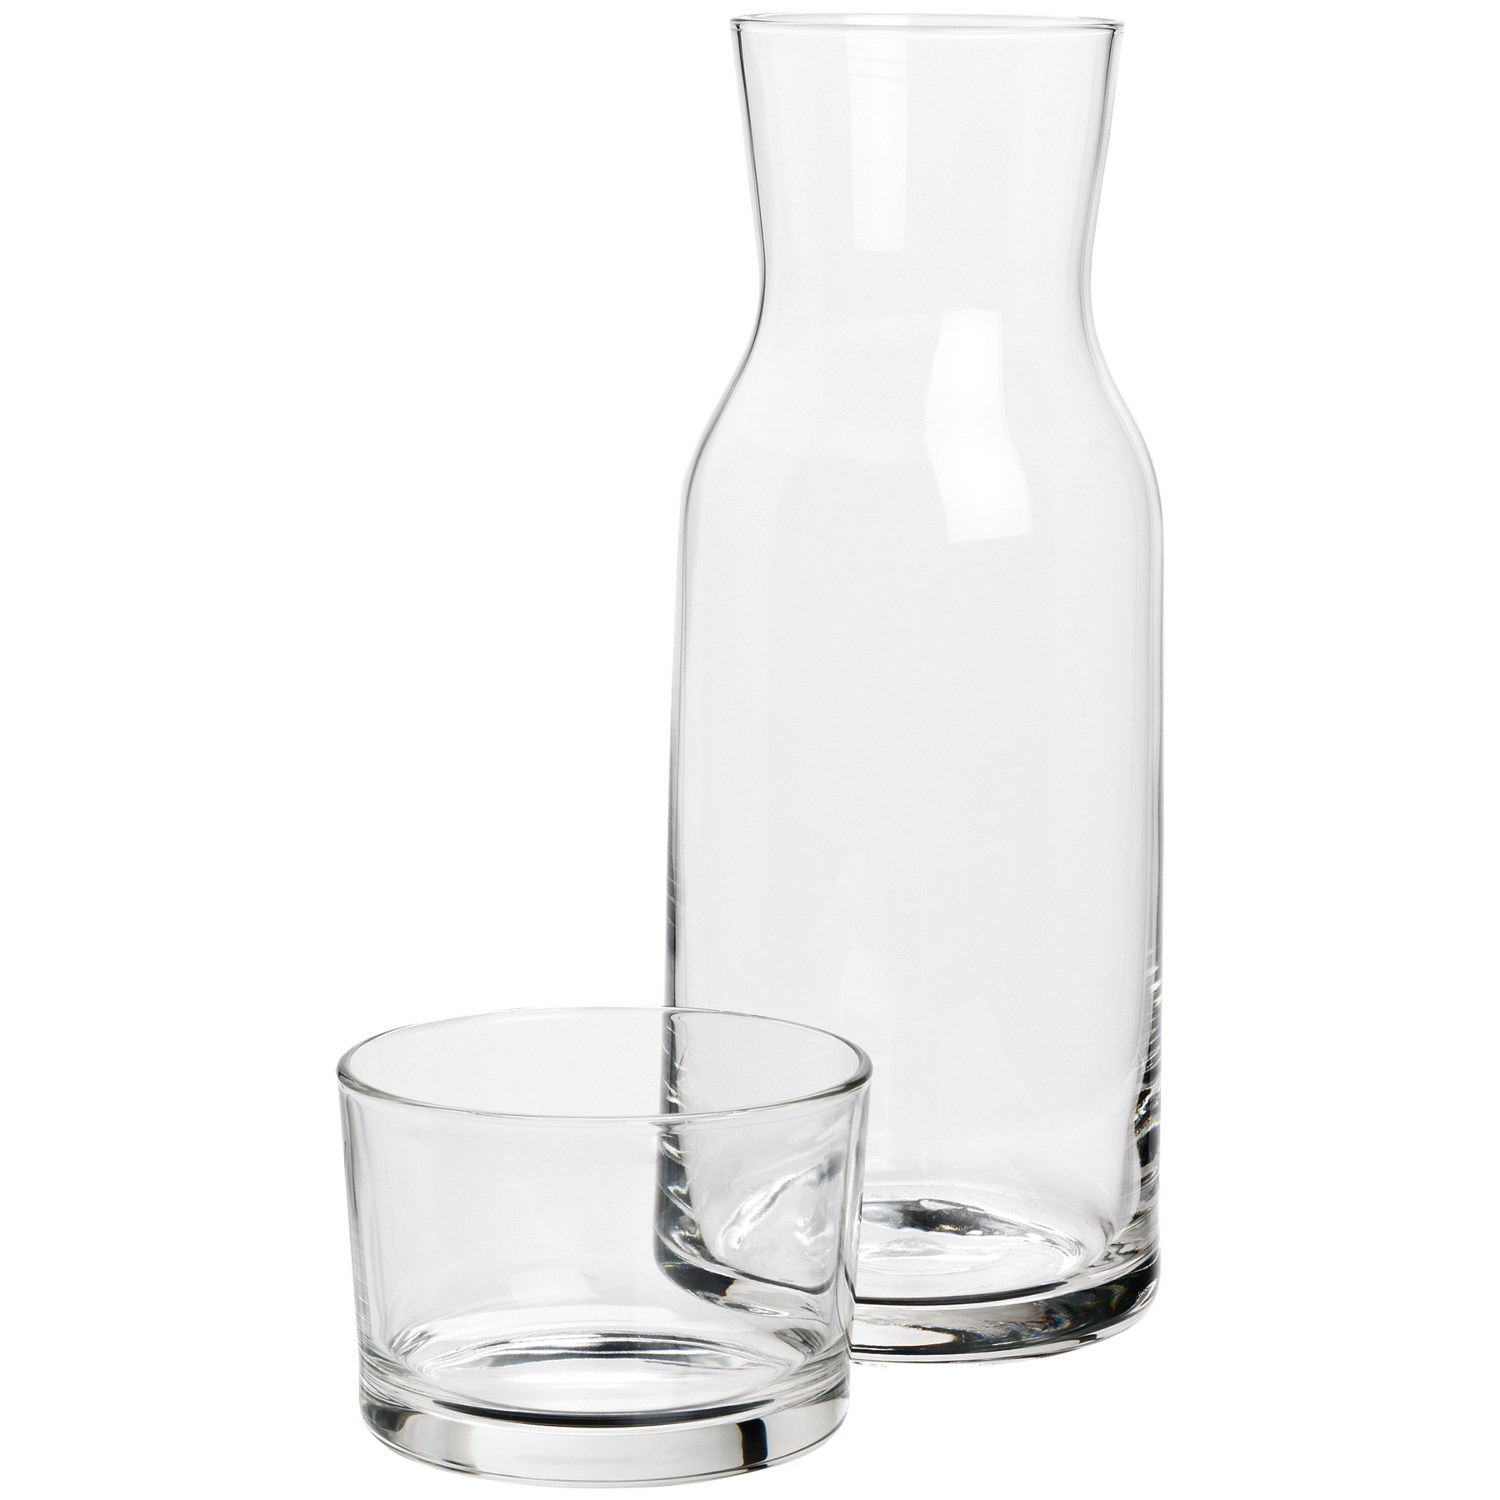 Bedside Water Carafe And Glass Bormioli Rocco Bedside Carafe 25 Fl Oz Glass 8326g